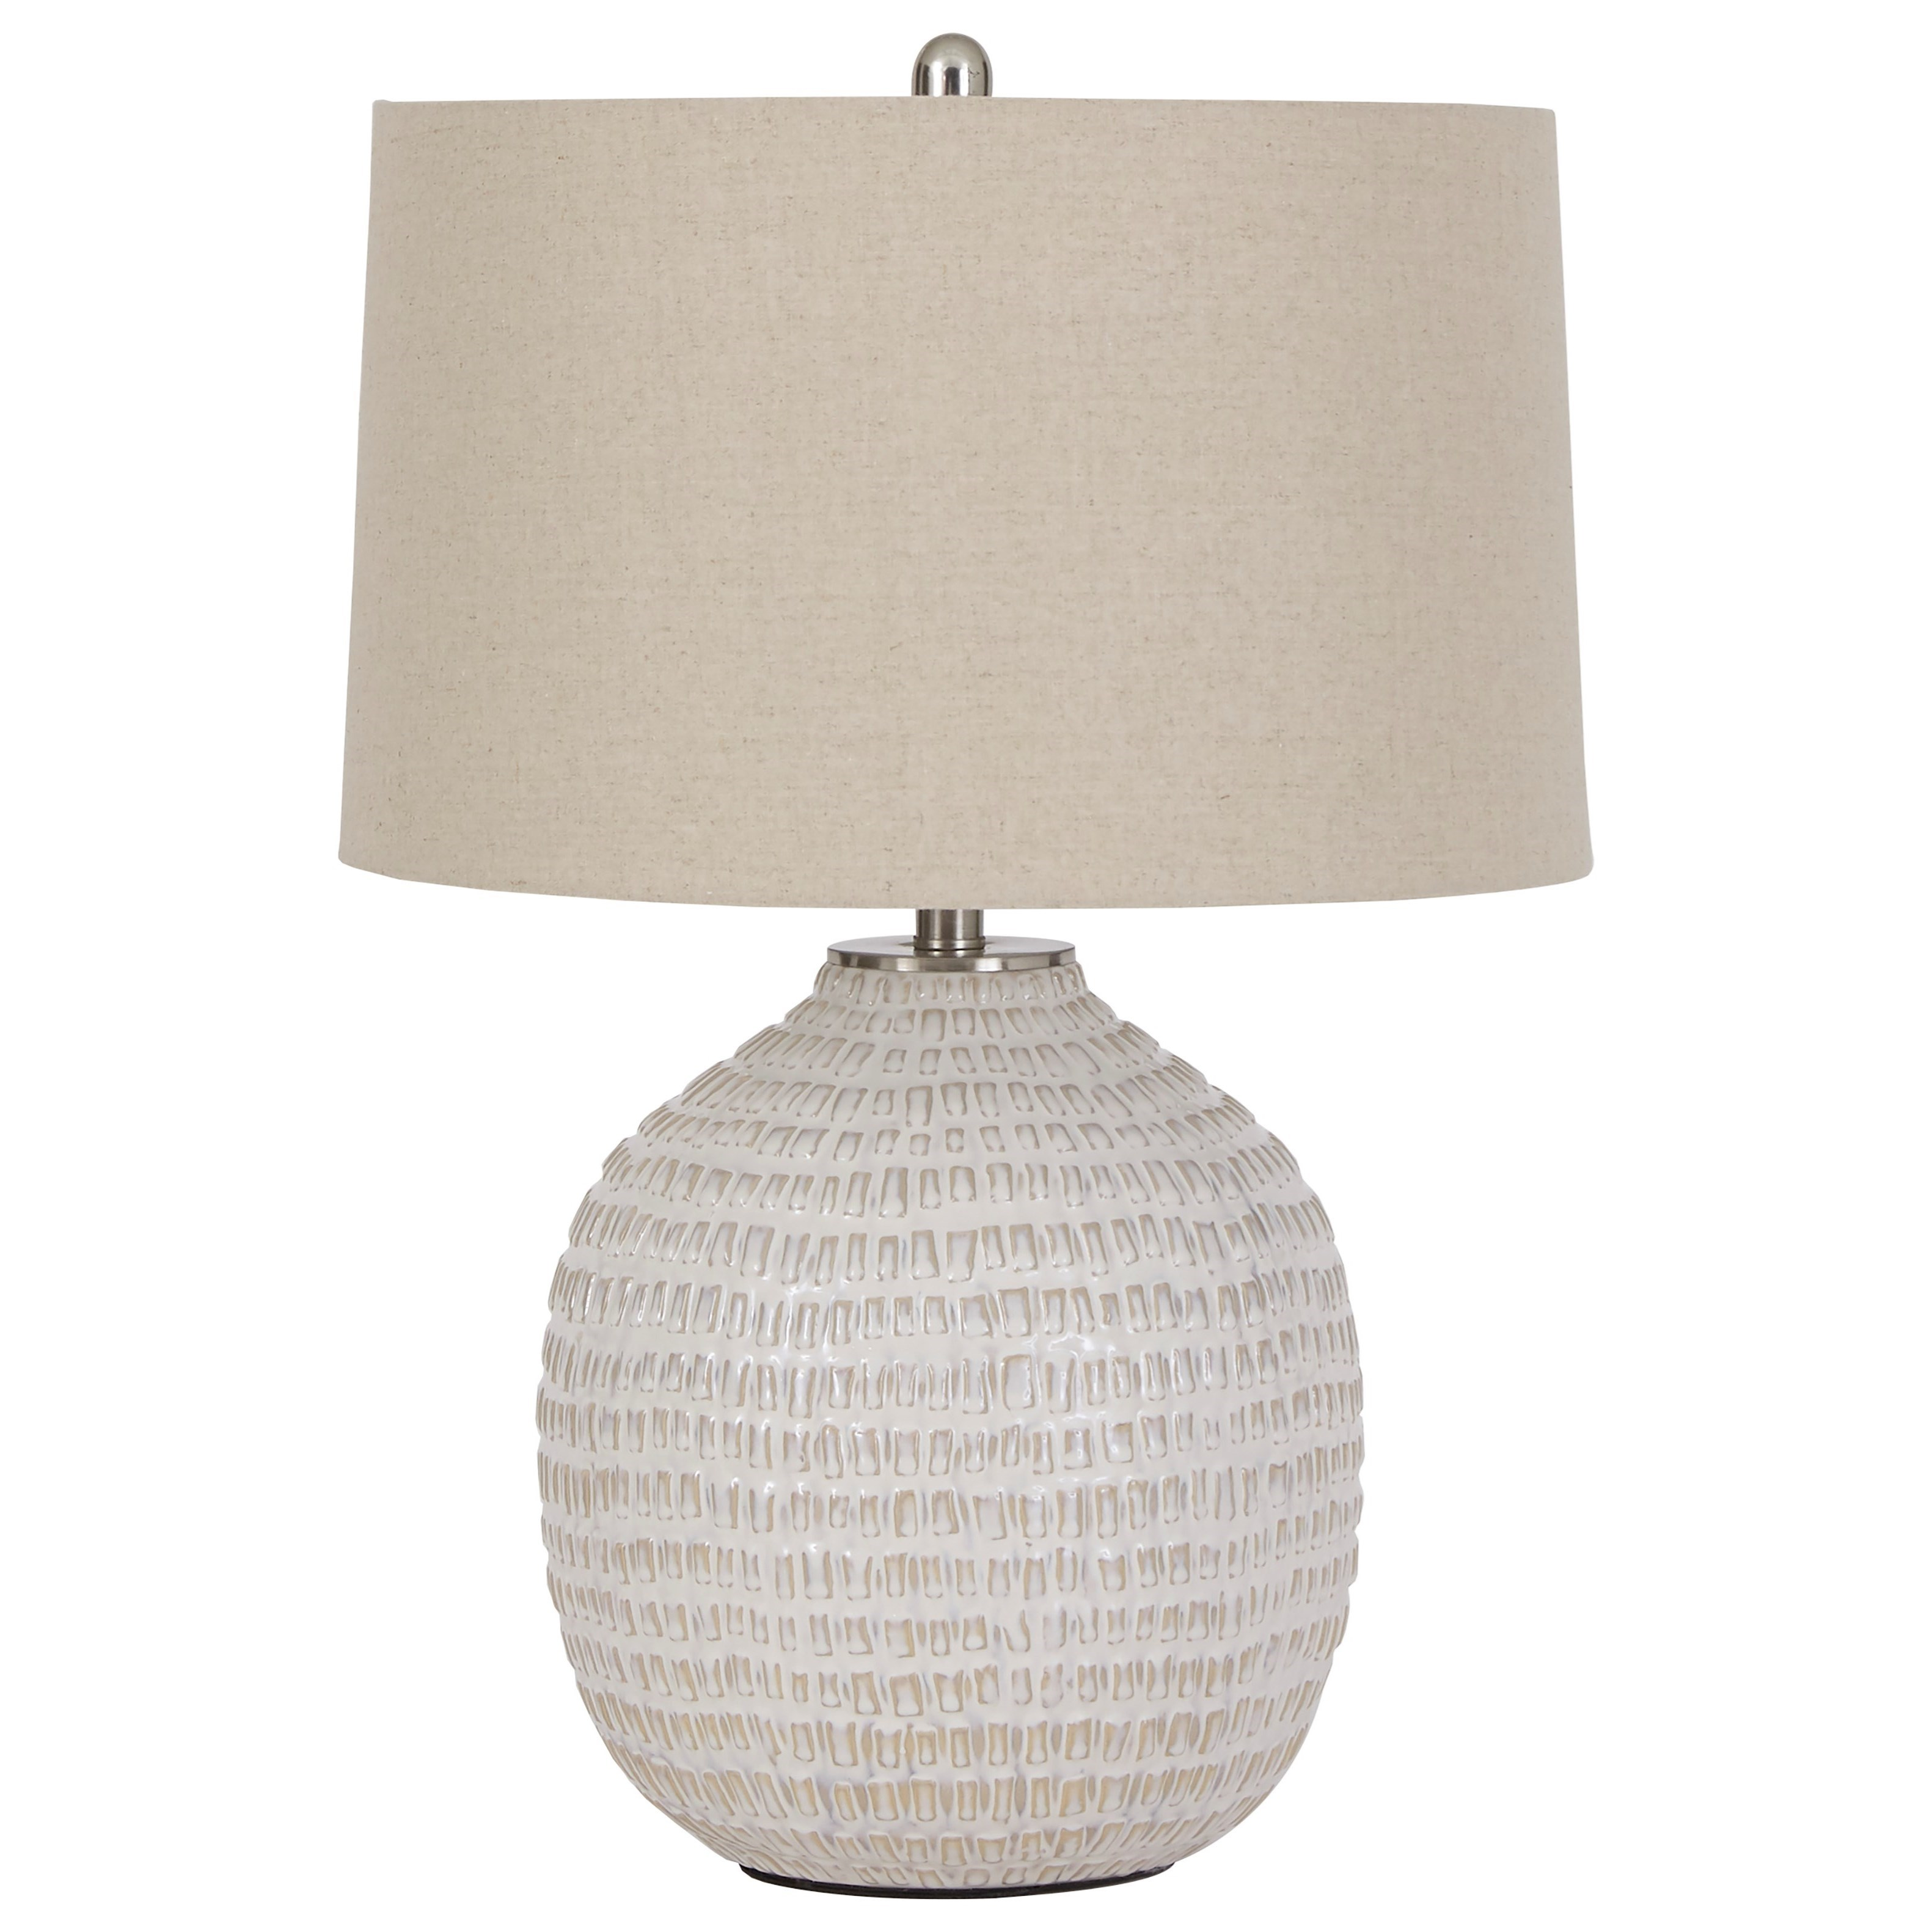 Lamps - Contemporary Jamon Beige Ceramic Table Lamp by Signature Design by Ashley at Northeast Factory Direct